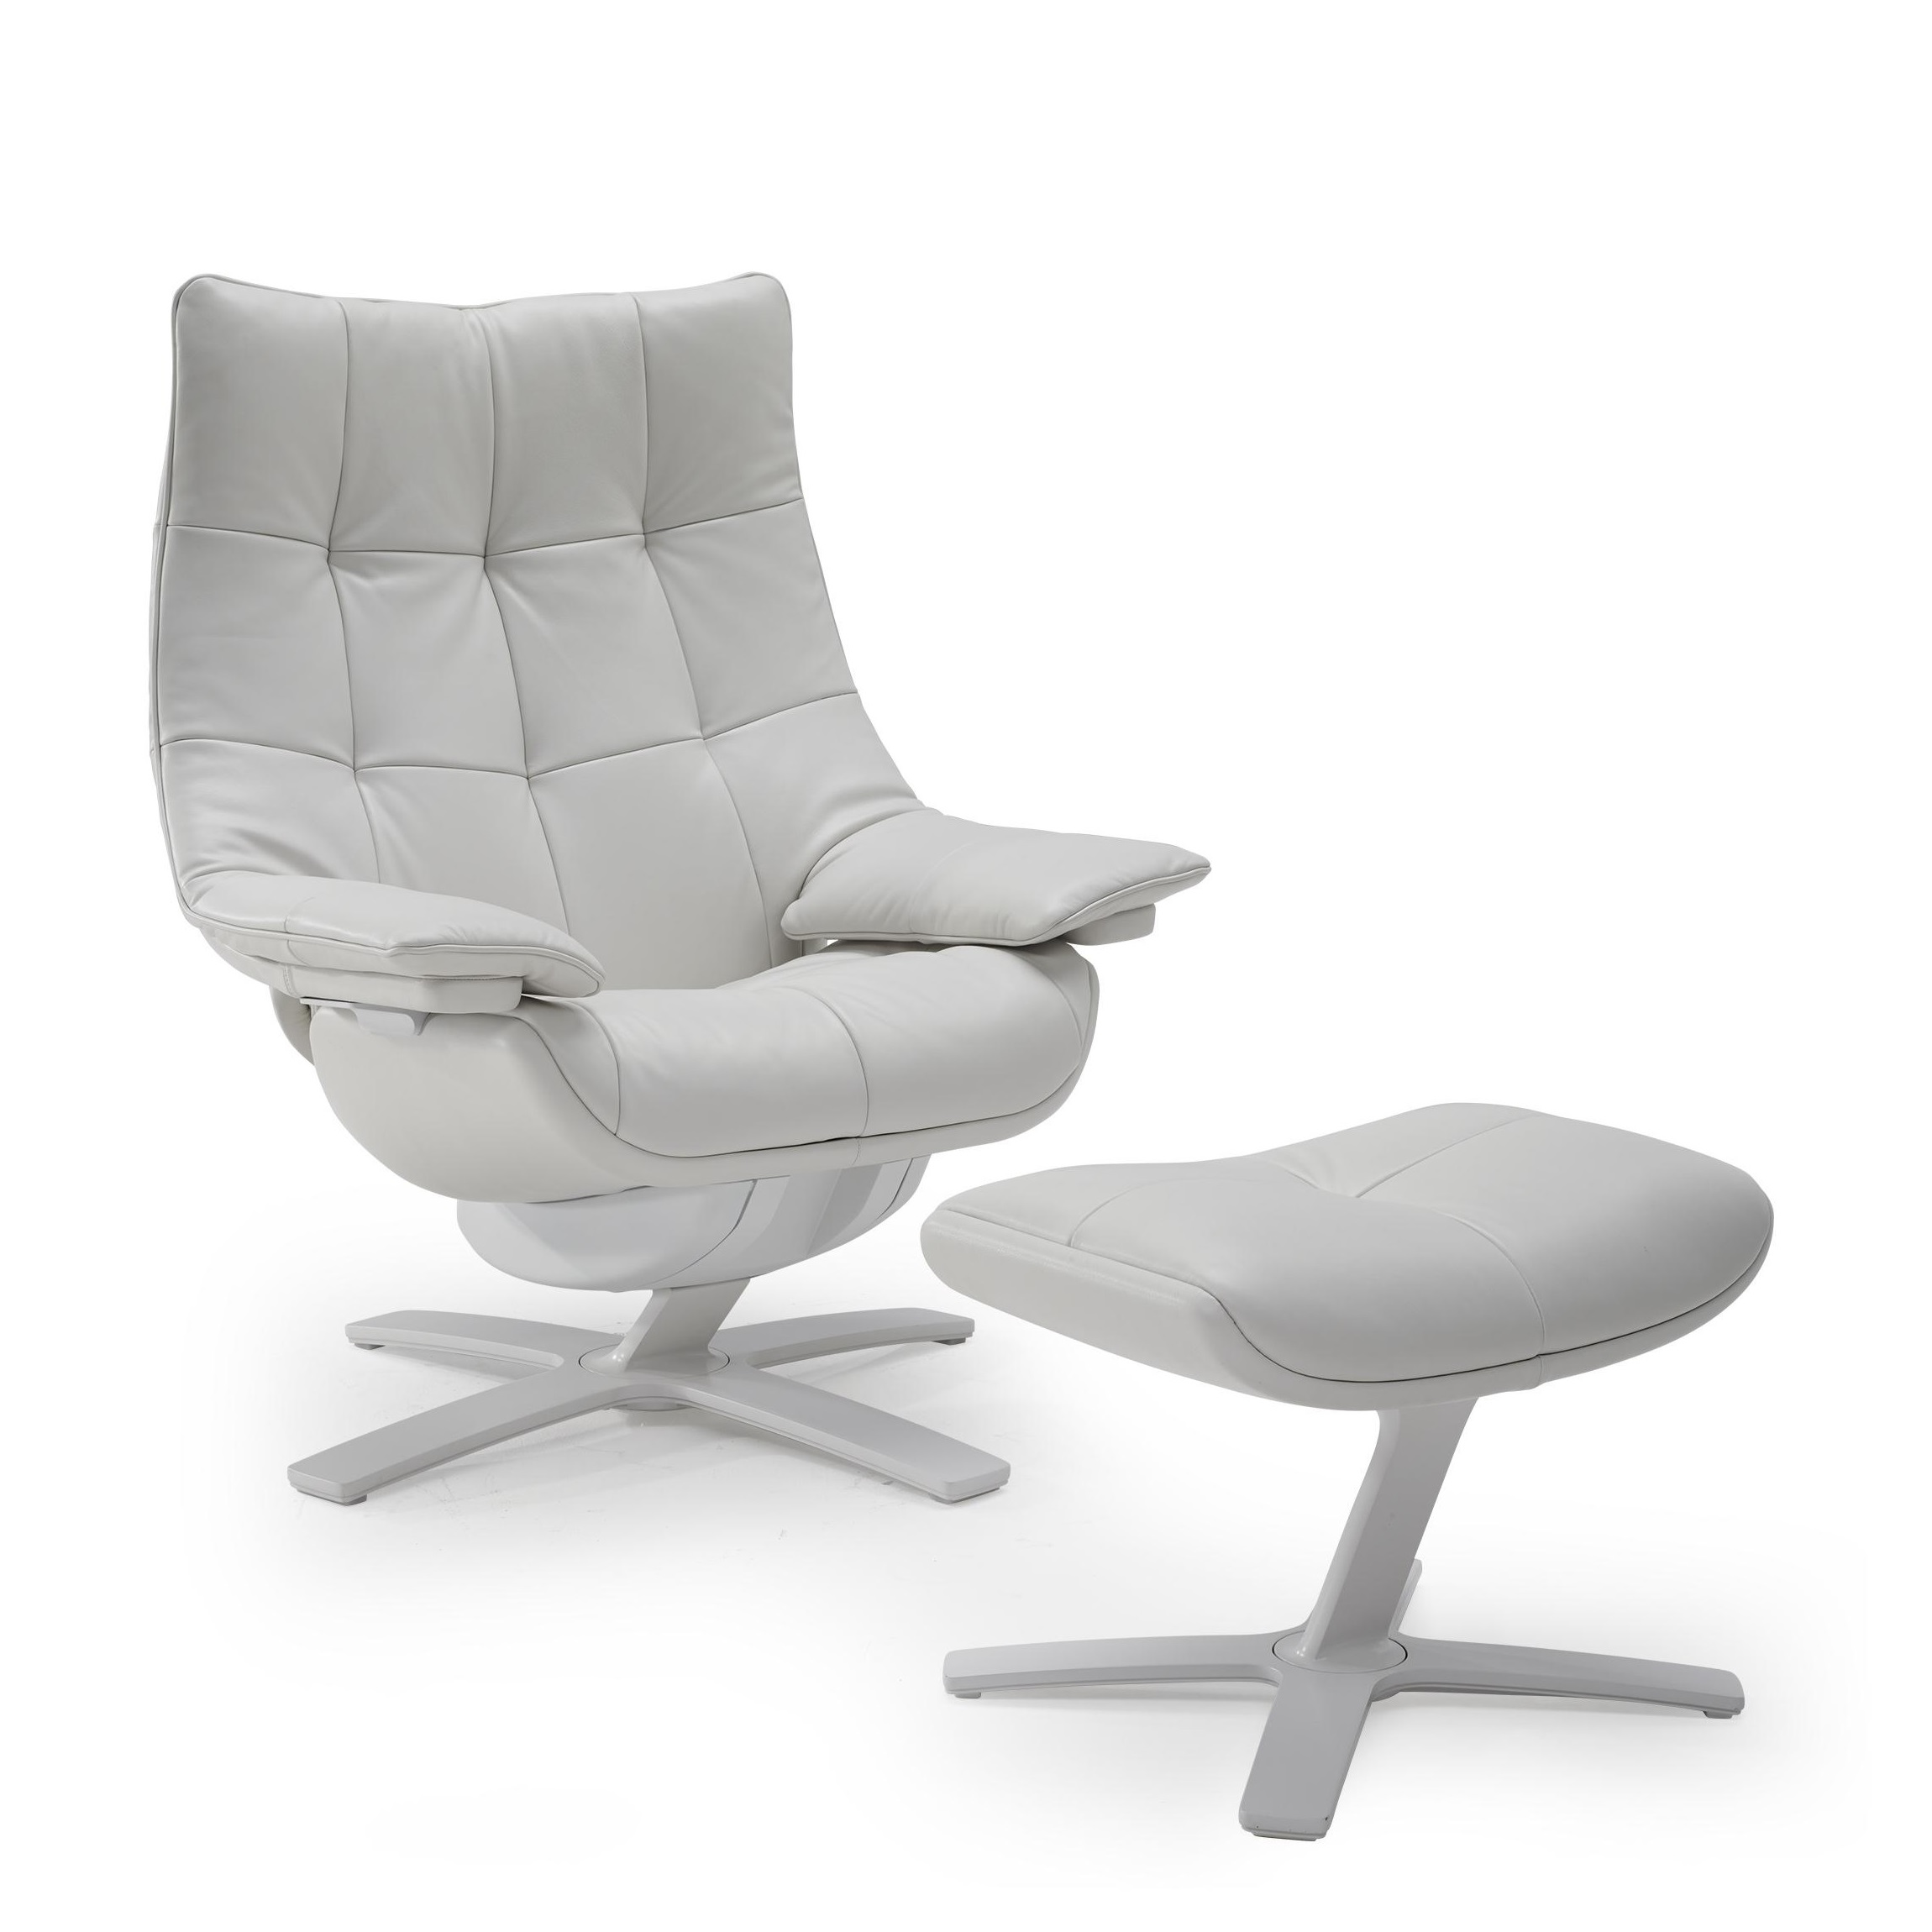 natuzzi revive chair wheelchair in french recliners and chaises archives house of denmark